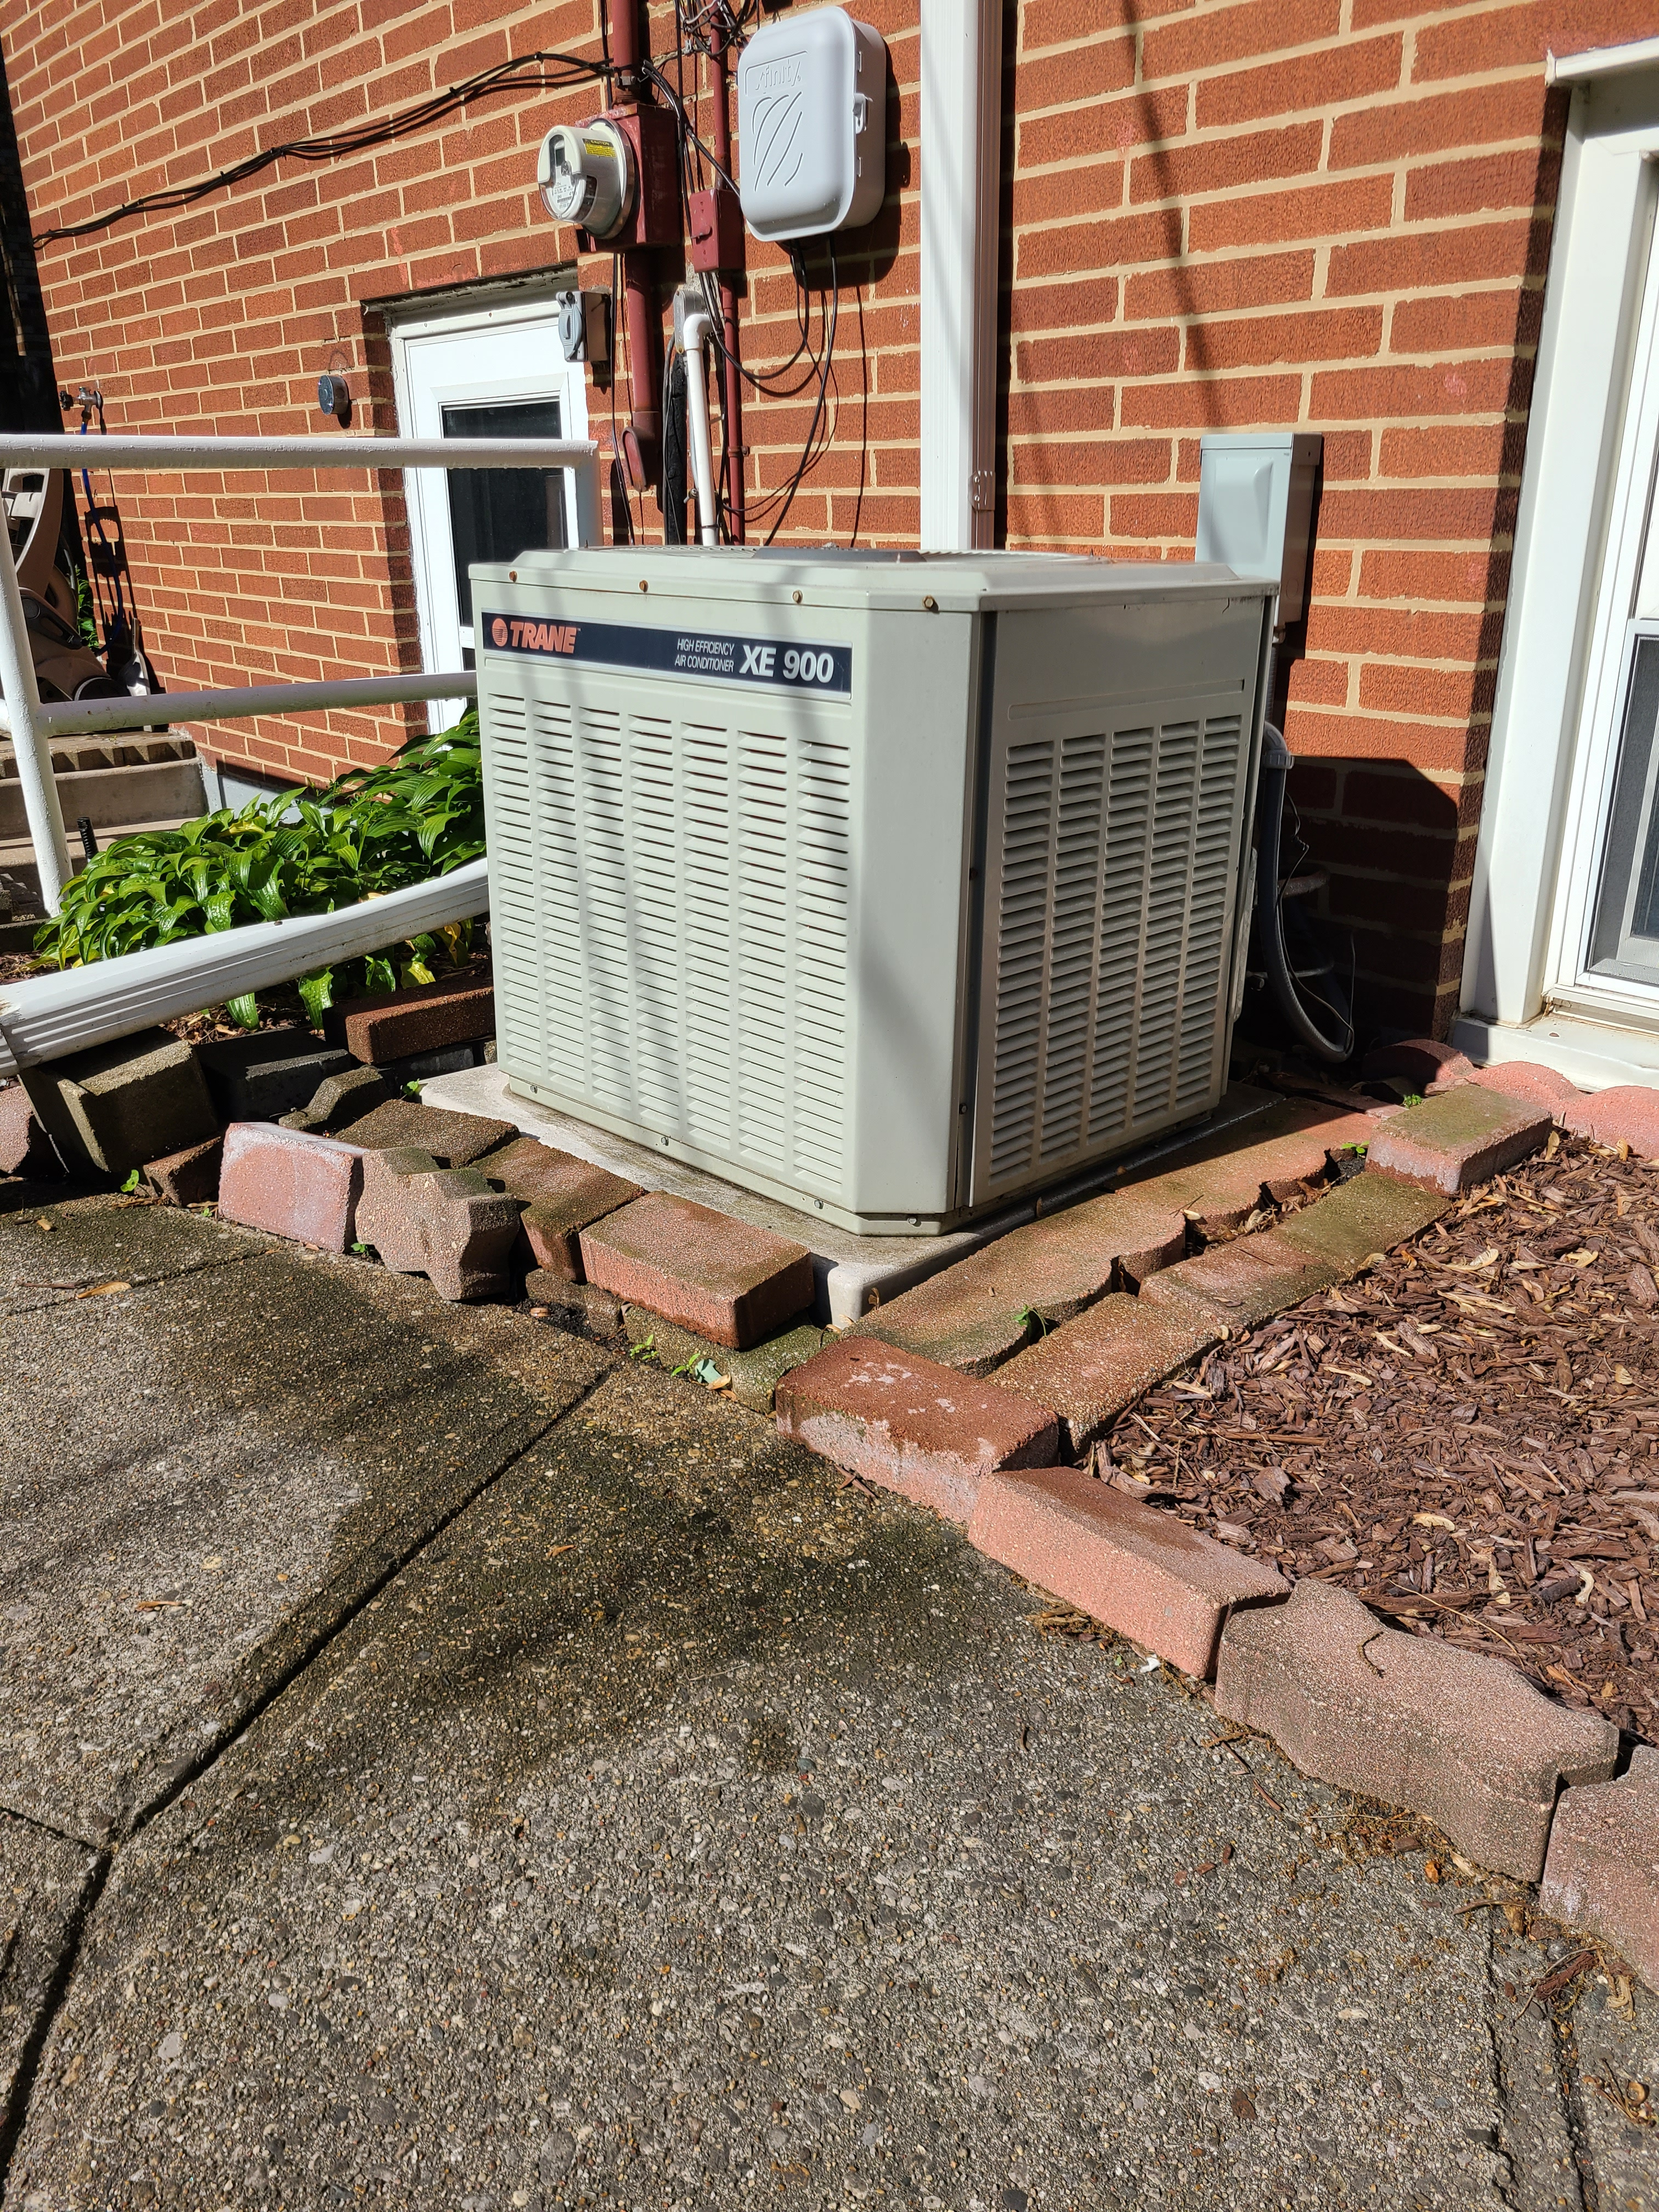 Trane r22 system gassed cleaned and ready for spring/ summer operation